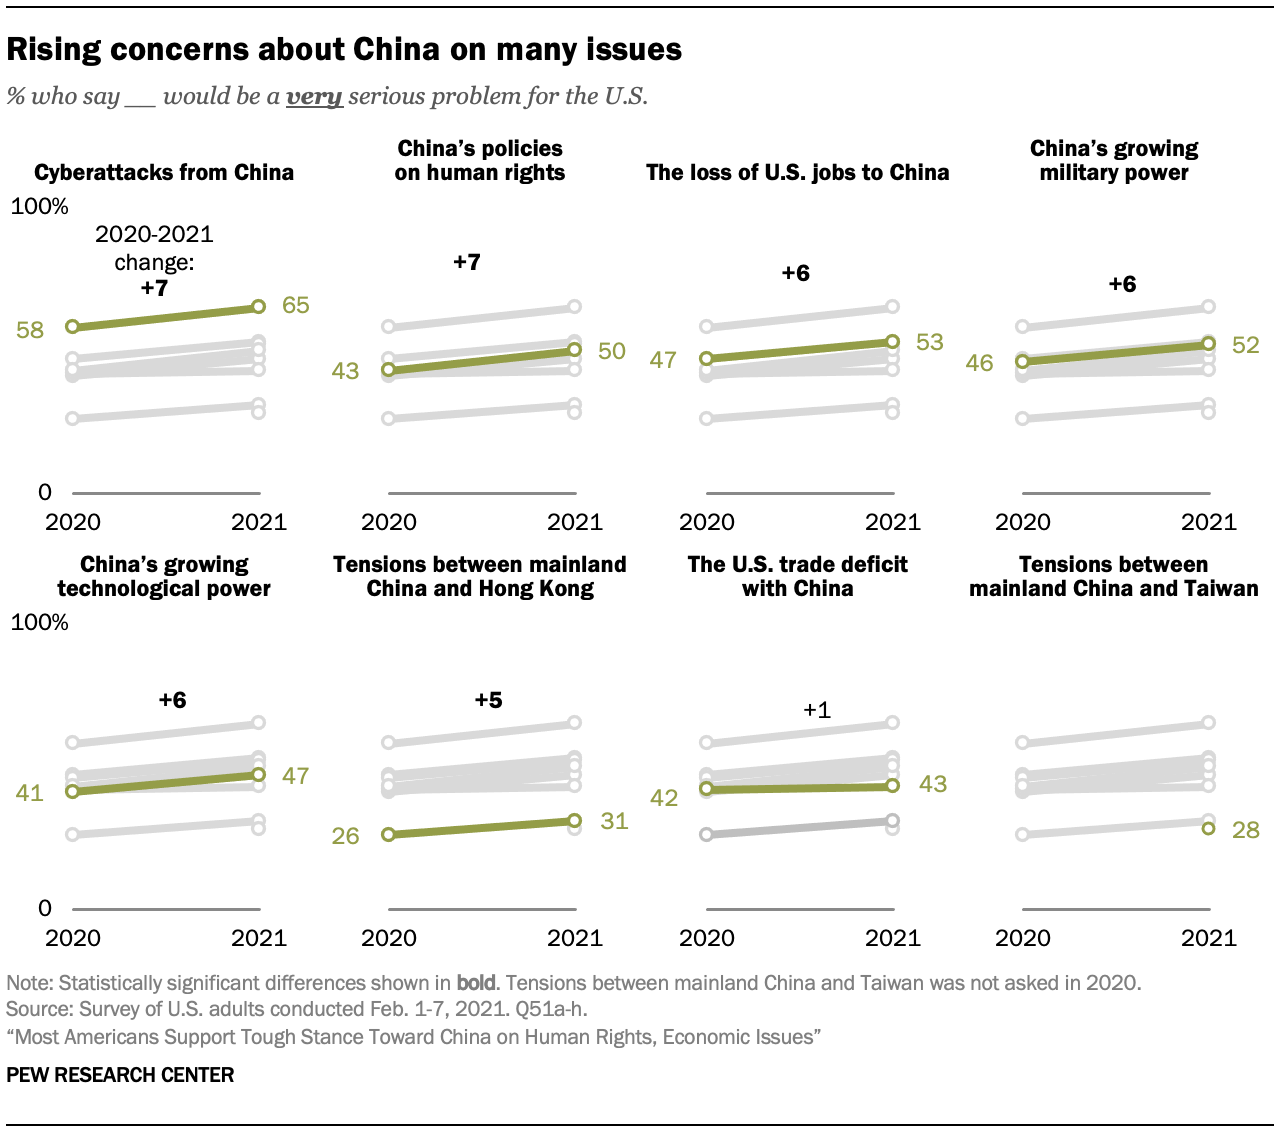 Rising concerns about China on many issues